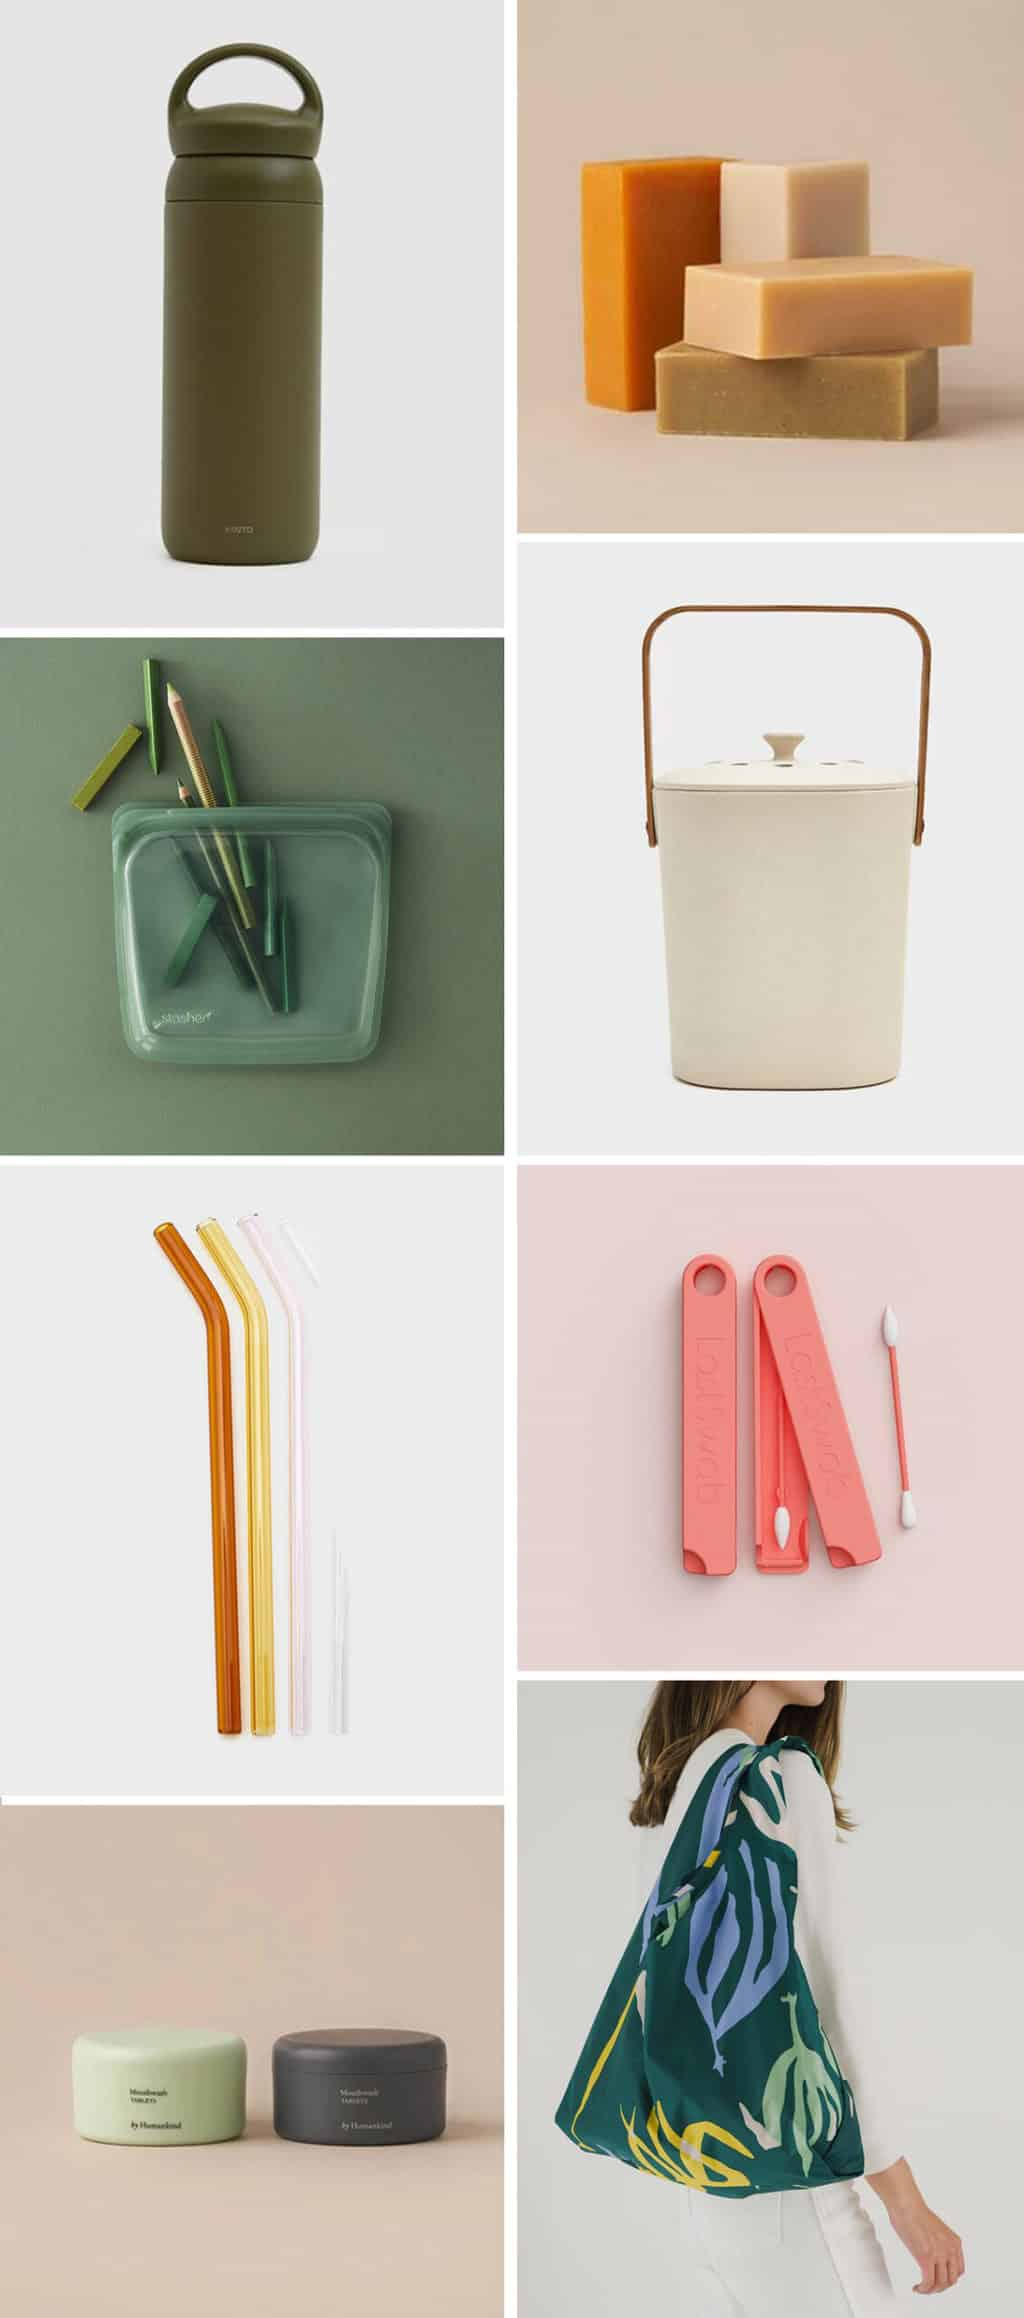 Cute reusable products that are eco friendly.